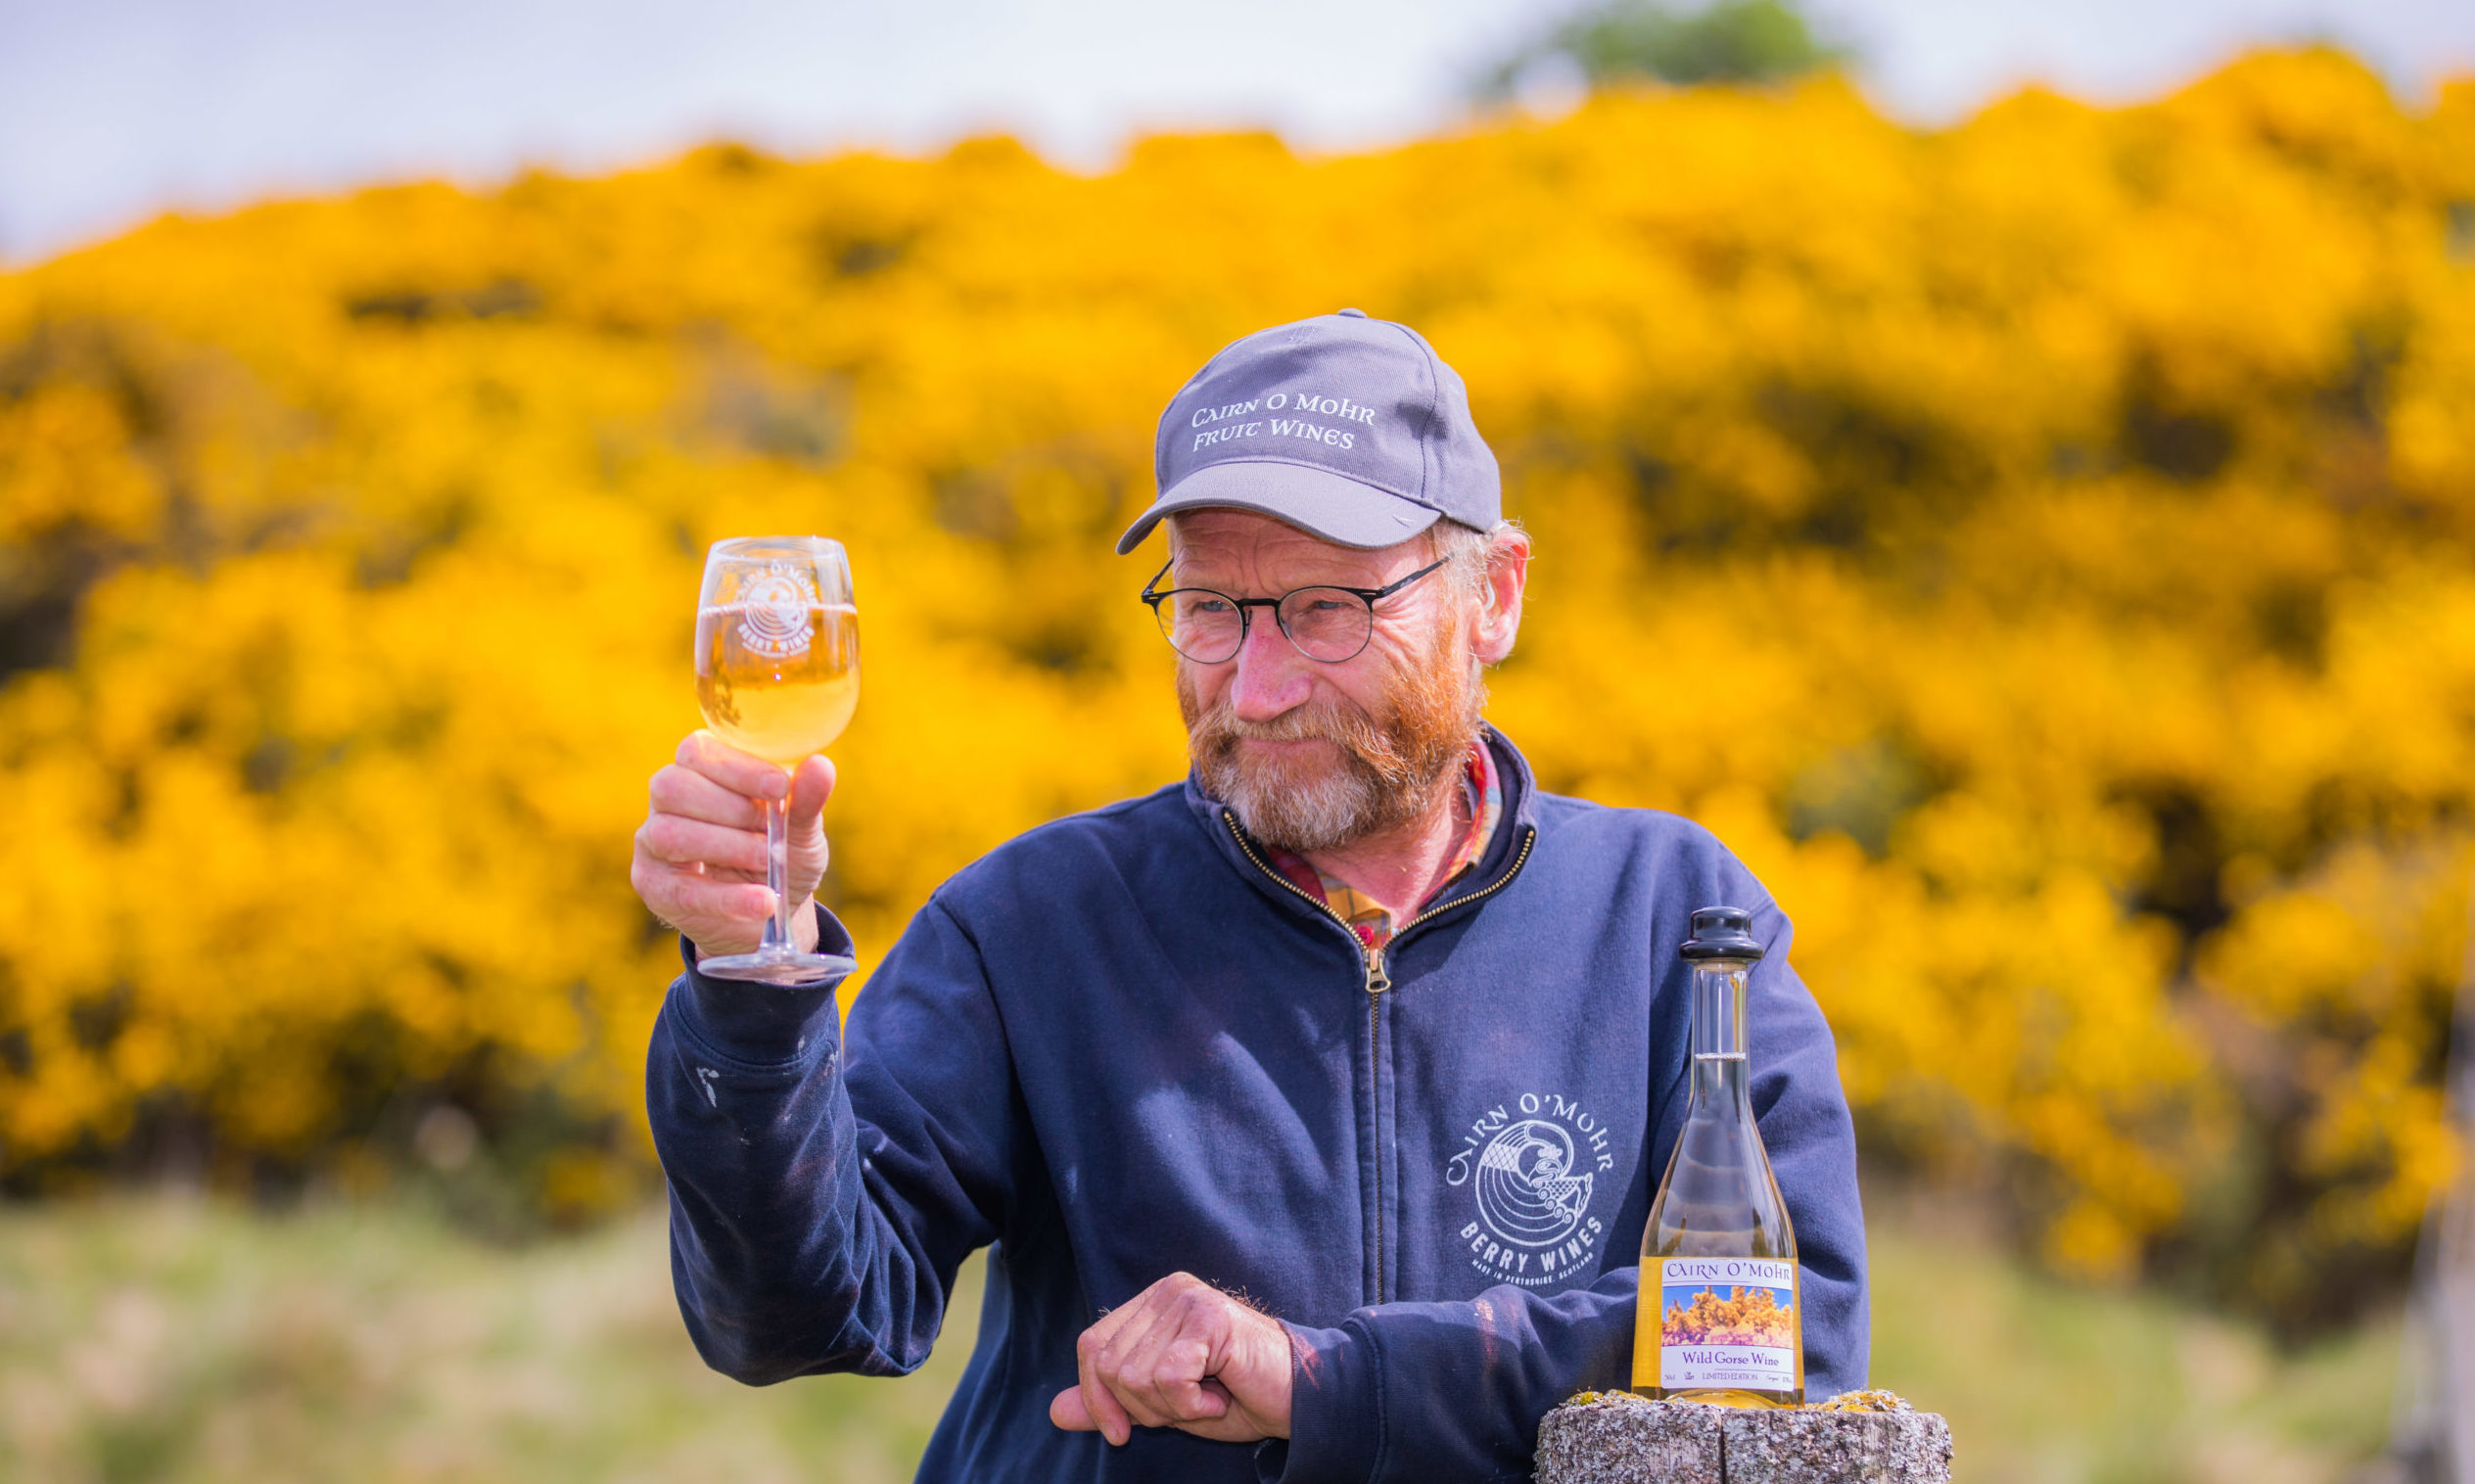 Ron Gillies (Cairn O' Mohr) with some of his product alongside local gorse bushes on the Sidlaws, near Rait.